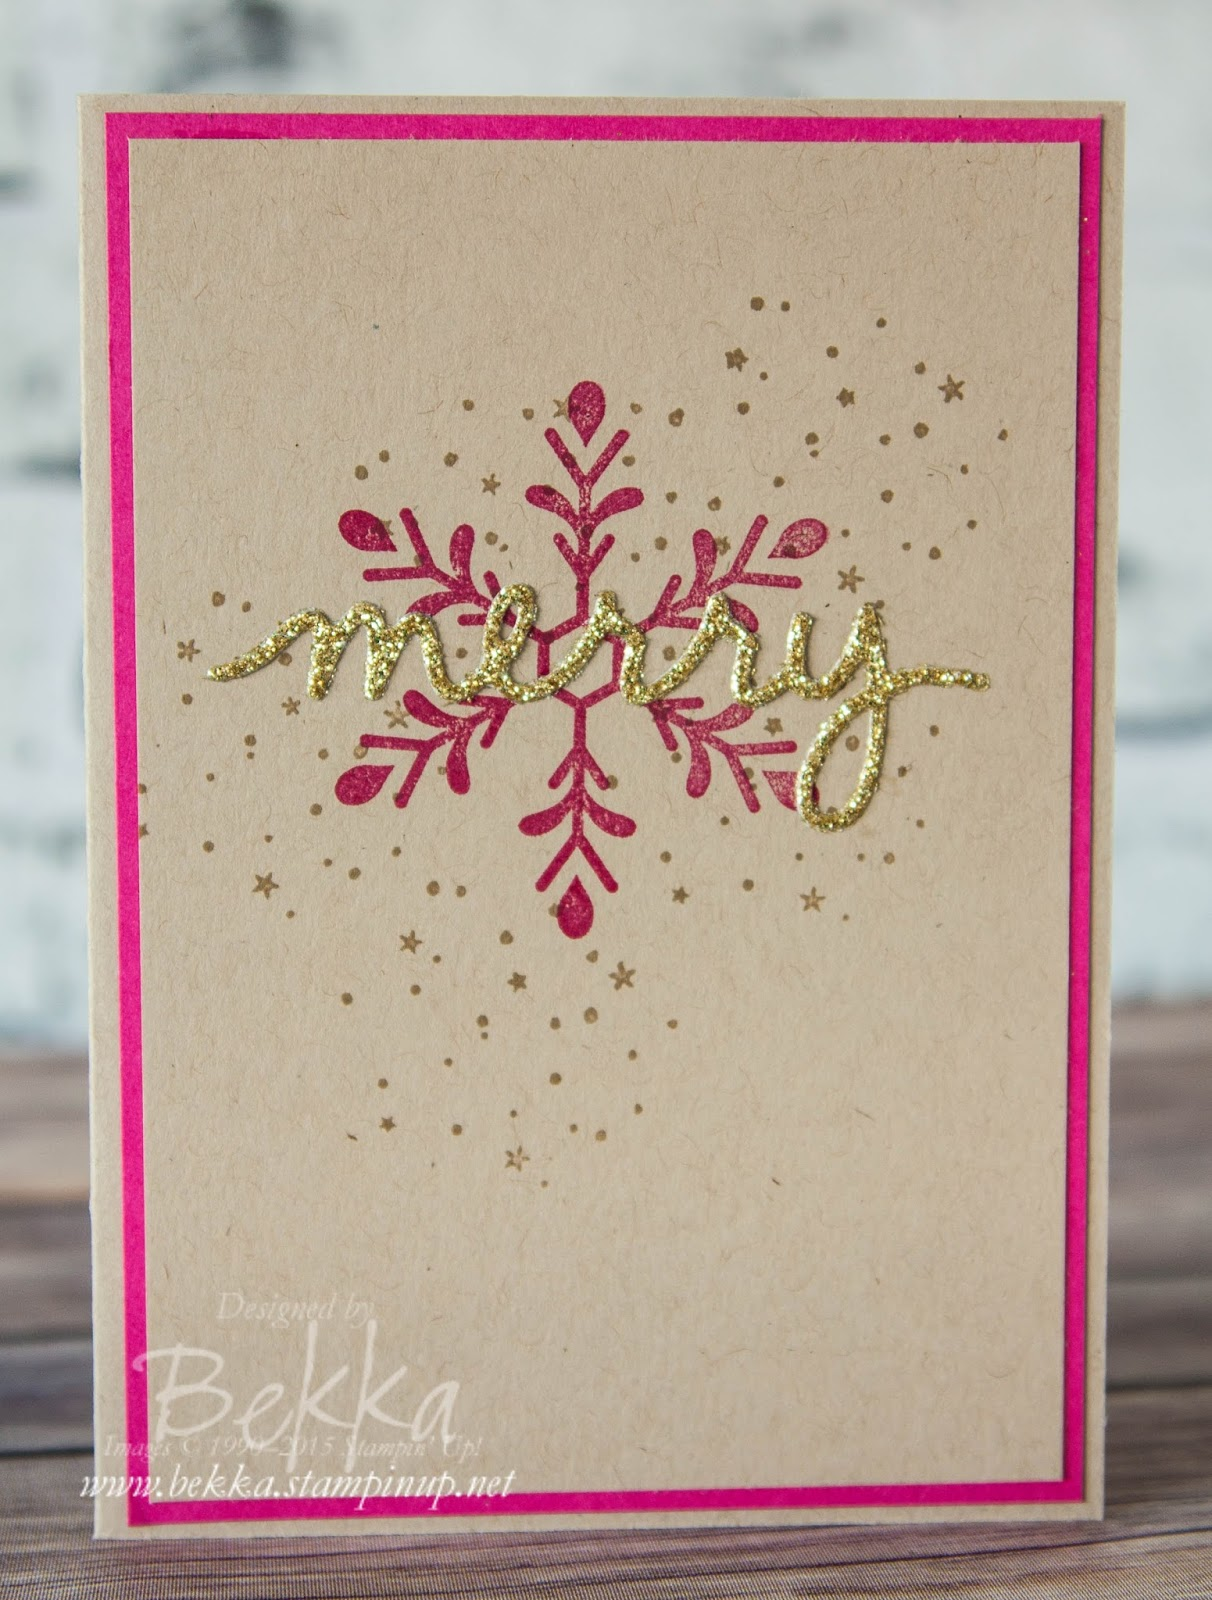 Stampin Up Uk Feeling Crafty Bekka Prideaux Stampin Up Uk